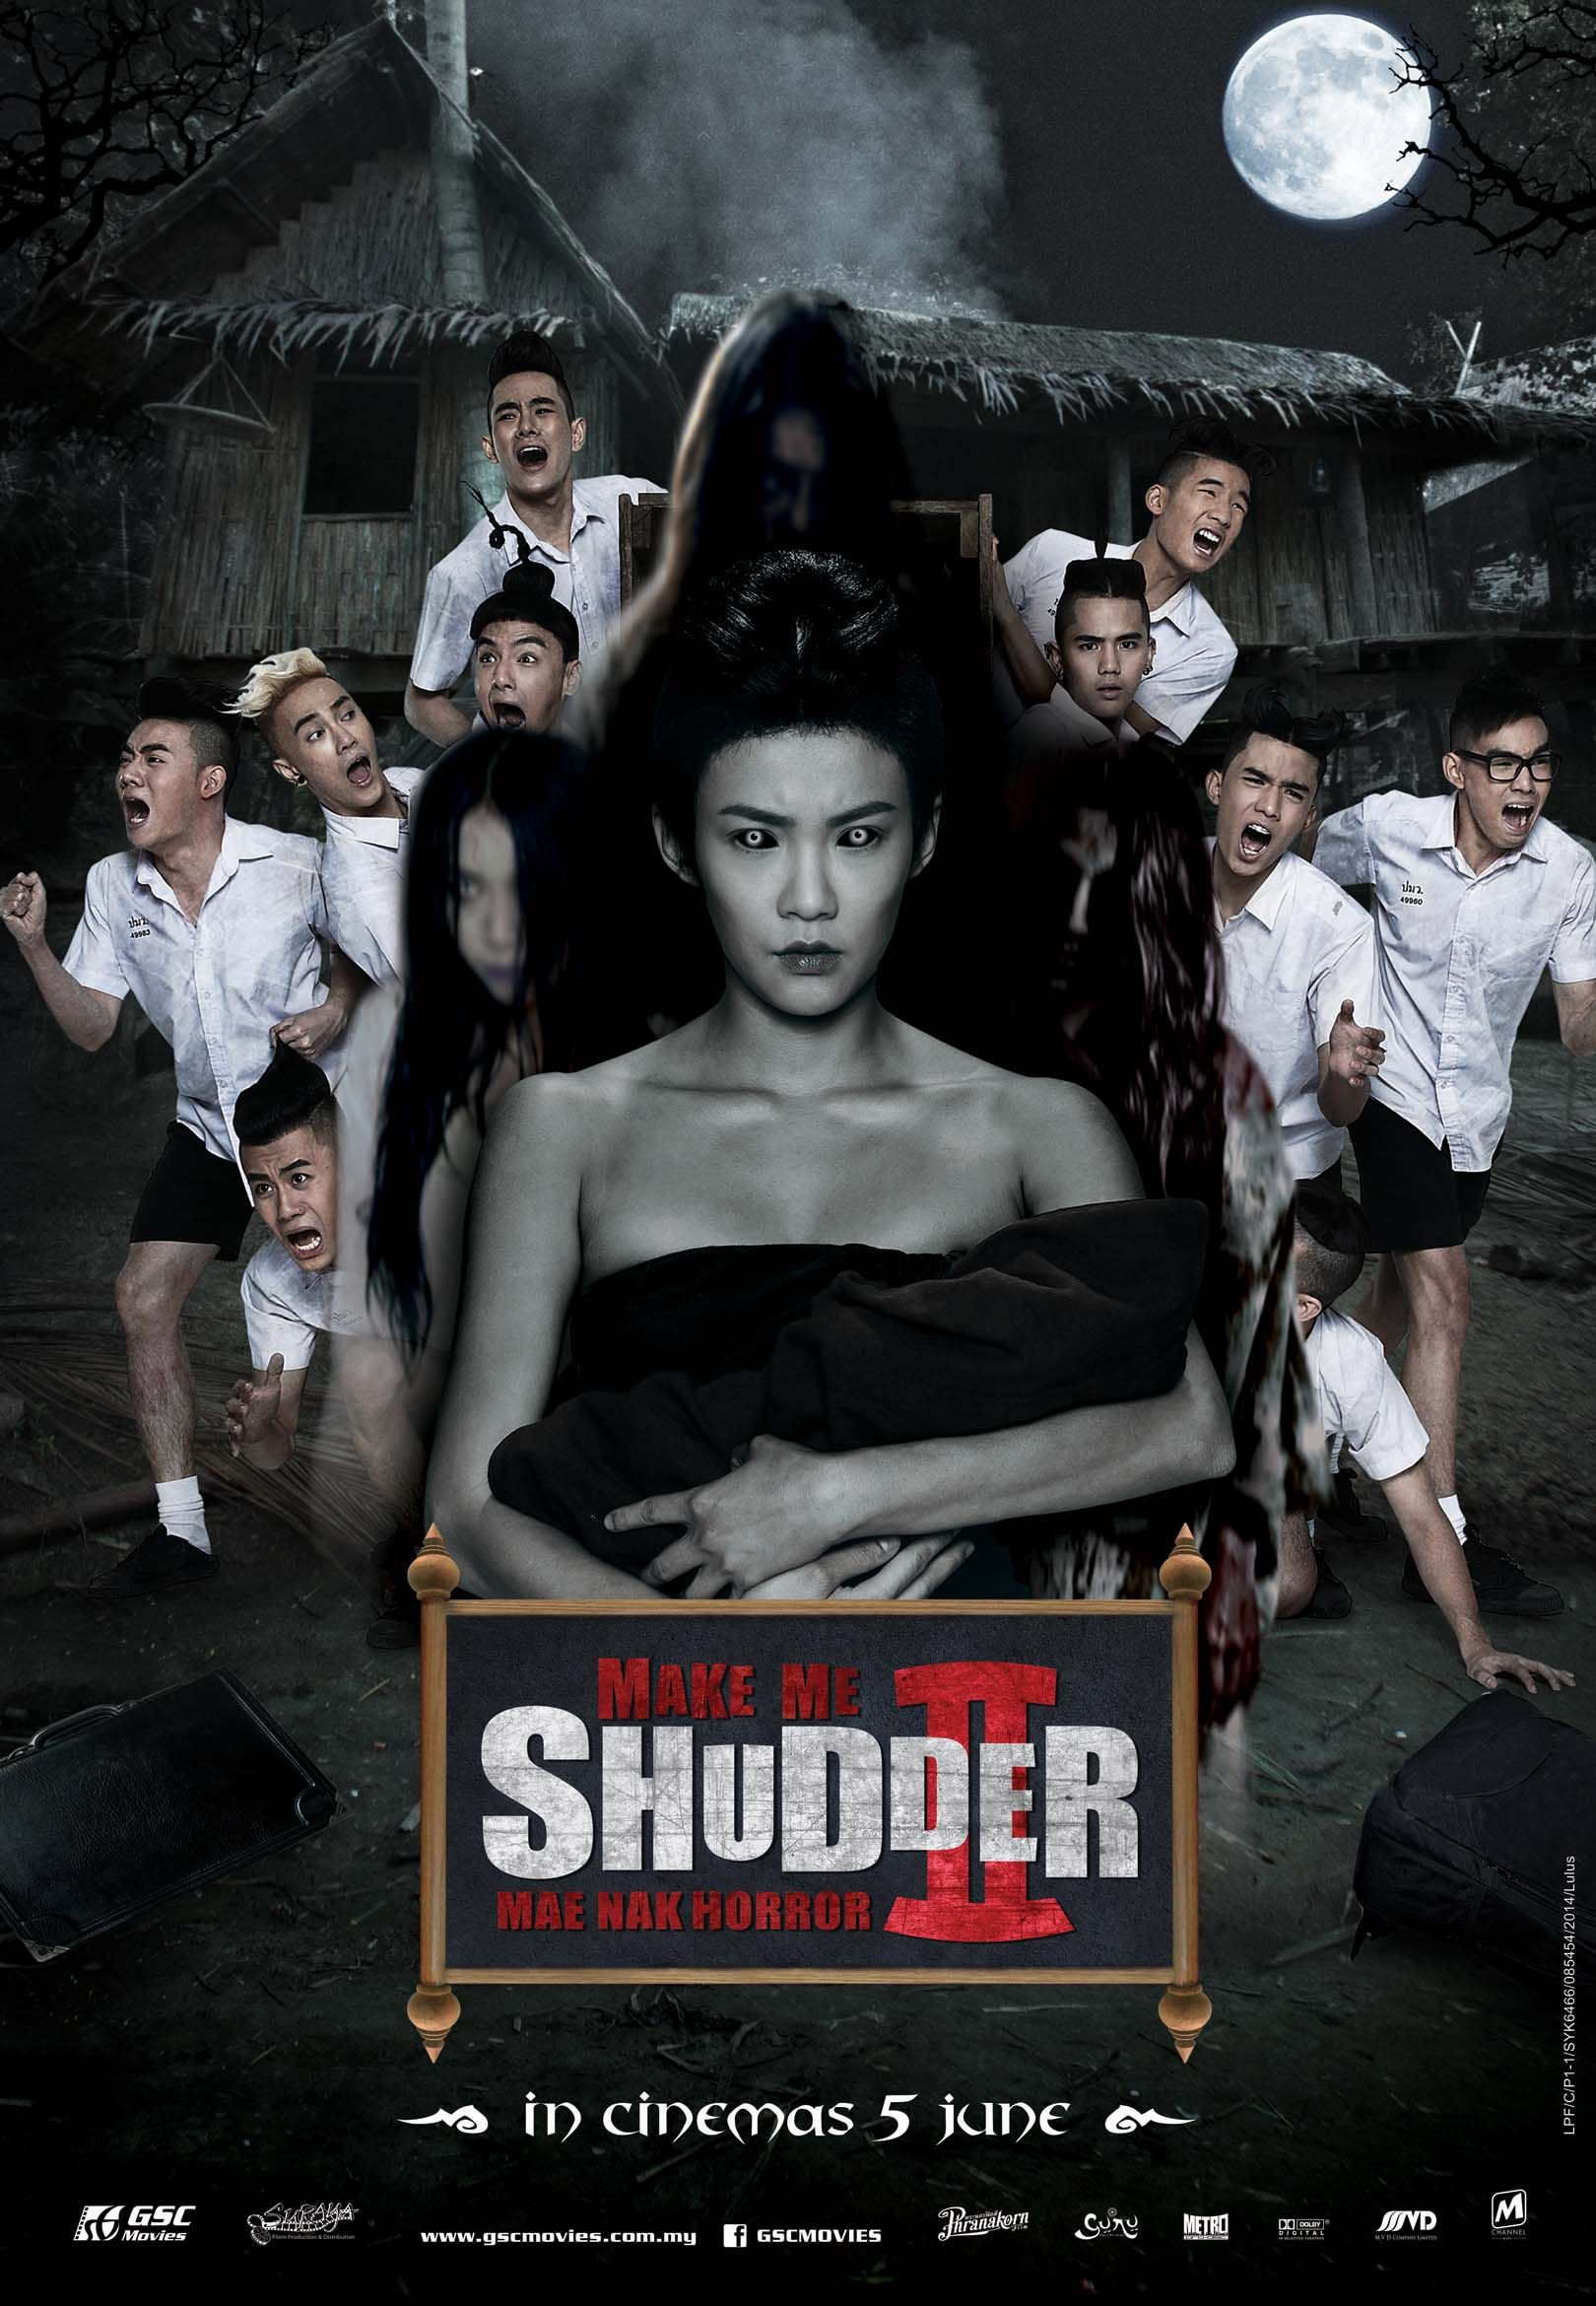 Make Me Shudder 2 Thailand Movie 2014 Full Movies Online Free Movies 2014 Full Movies